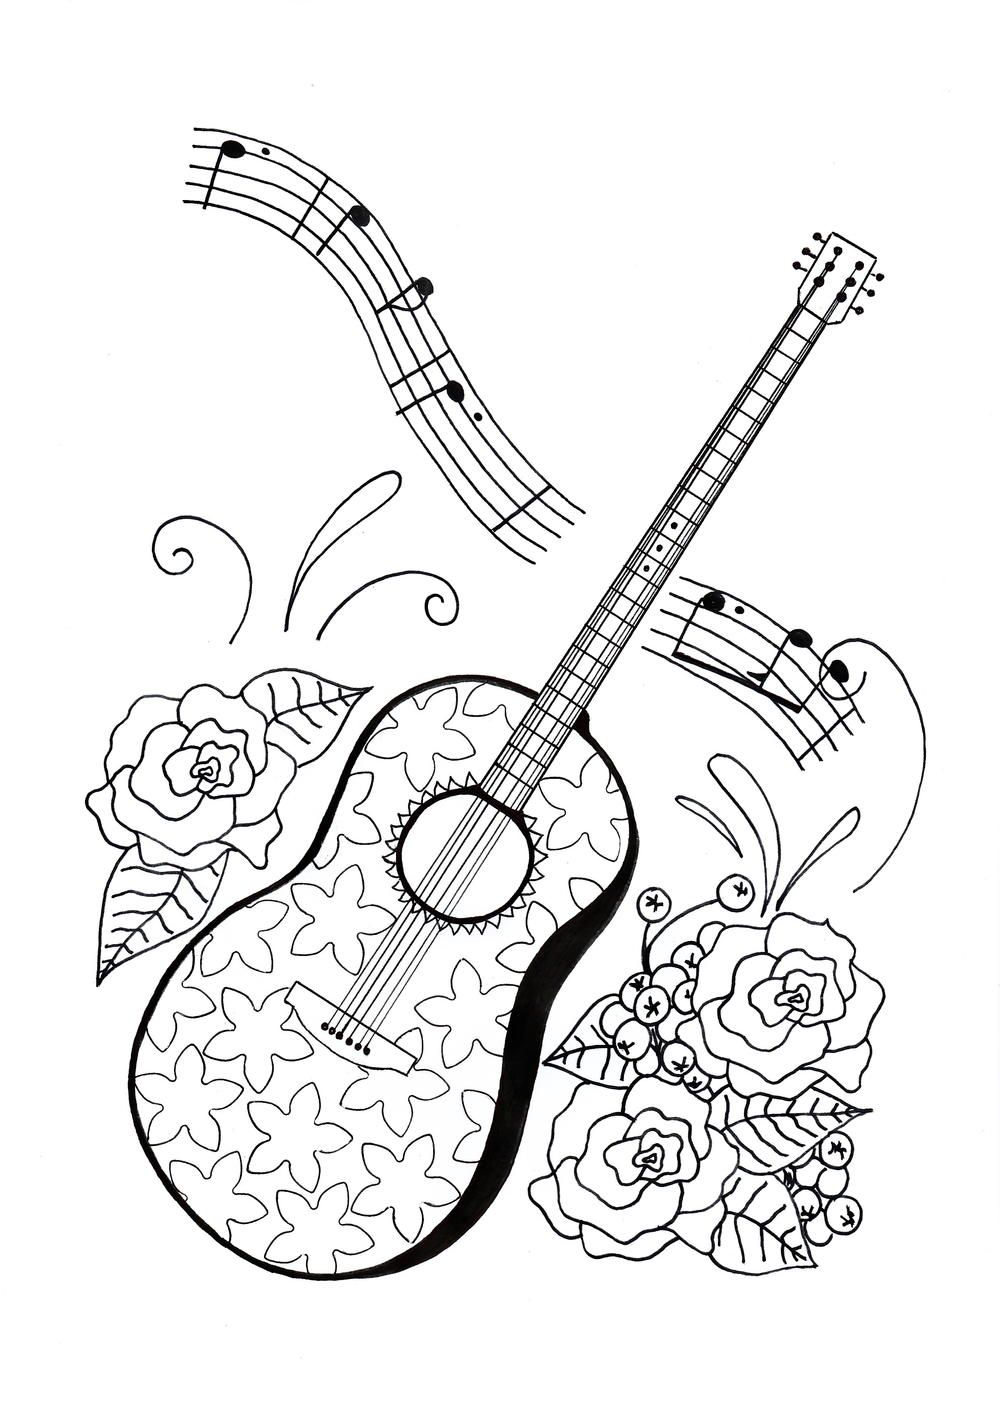 For the Love of Music Adult Coloring Page Doodle musings